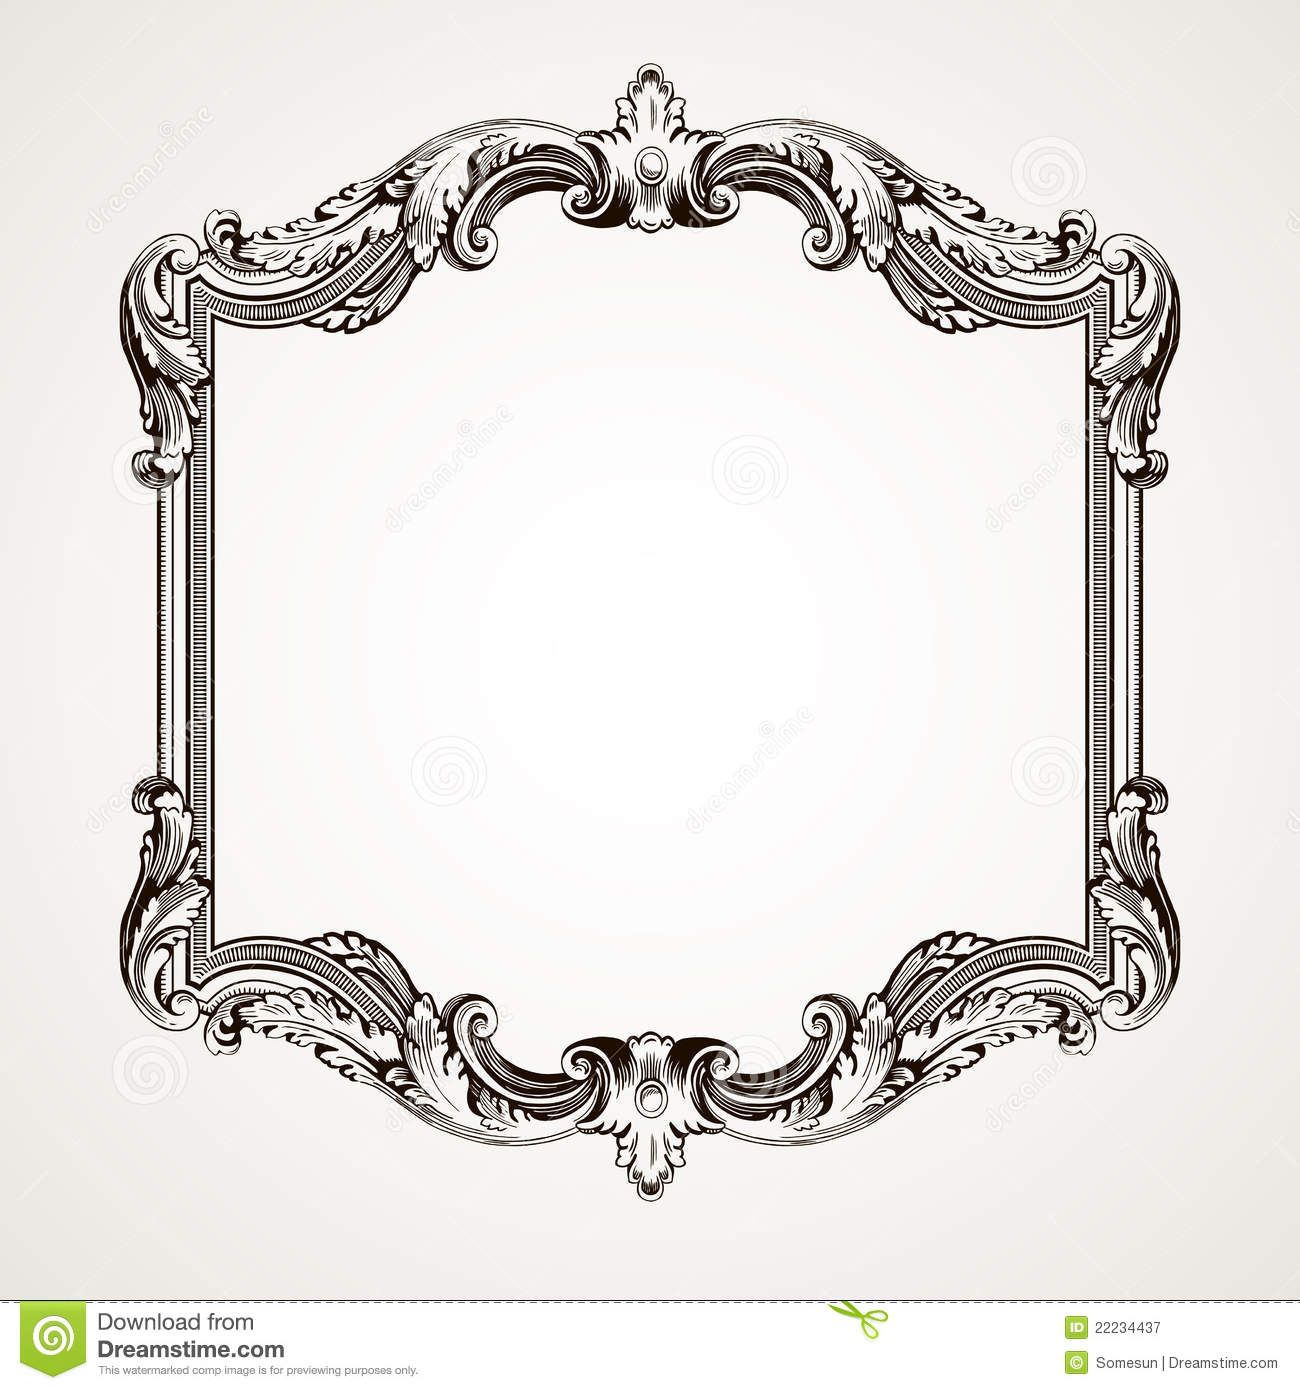 Vector Vintage Border Frame Engraving Download From Over 55 Million High Quality Stock Photos Images Vectors Vintage Borders Ornament Frame Retro Ornaments